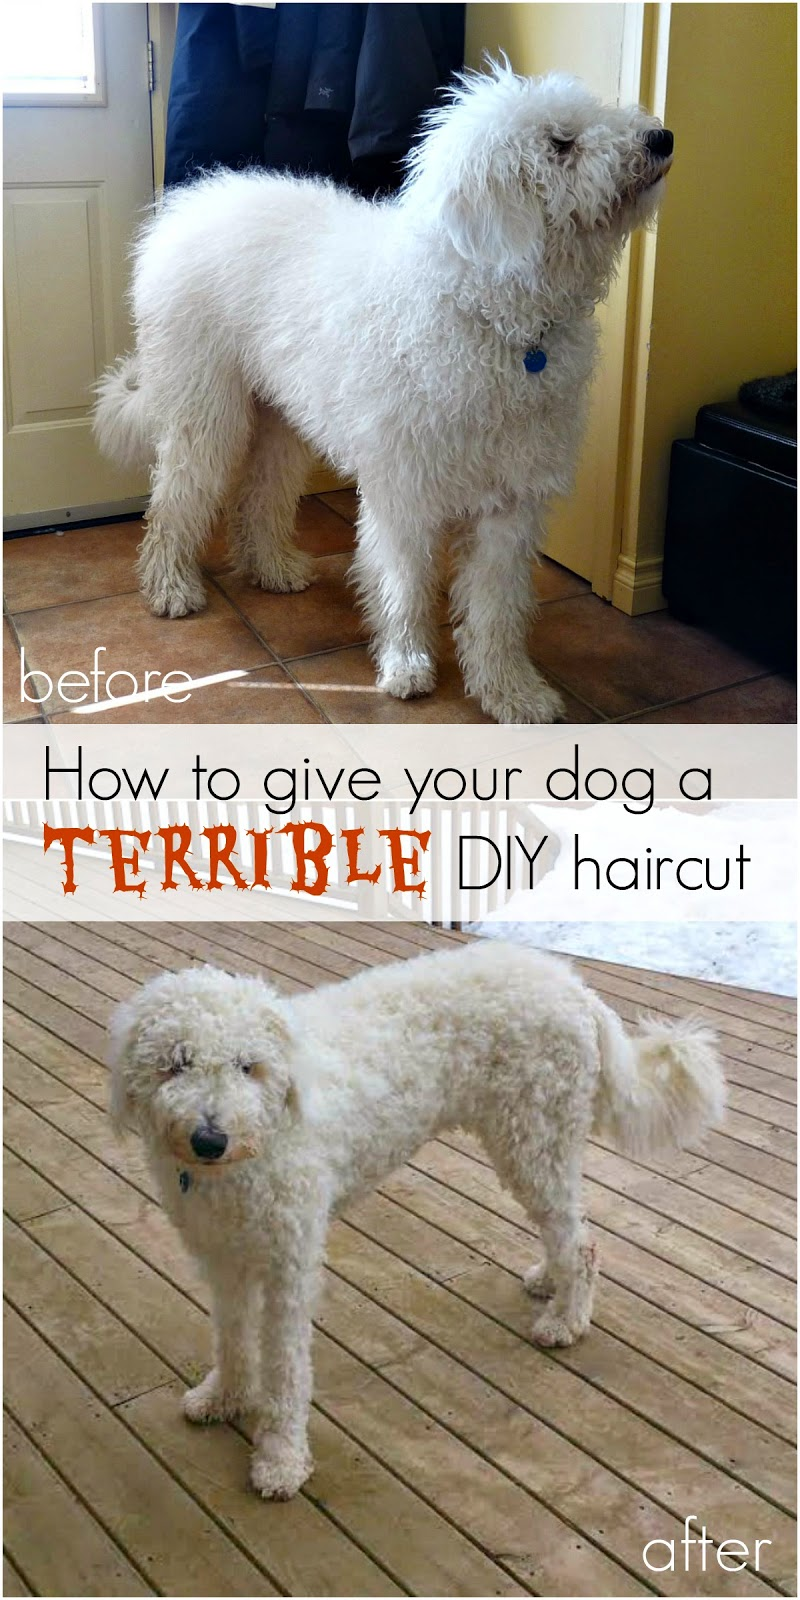 how to give your dog a terrible haircut | dans le lakehouse